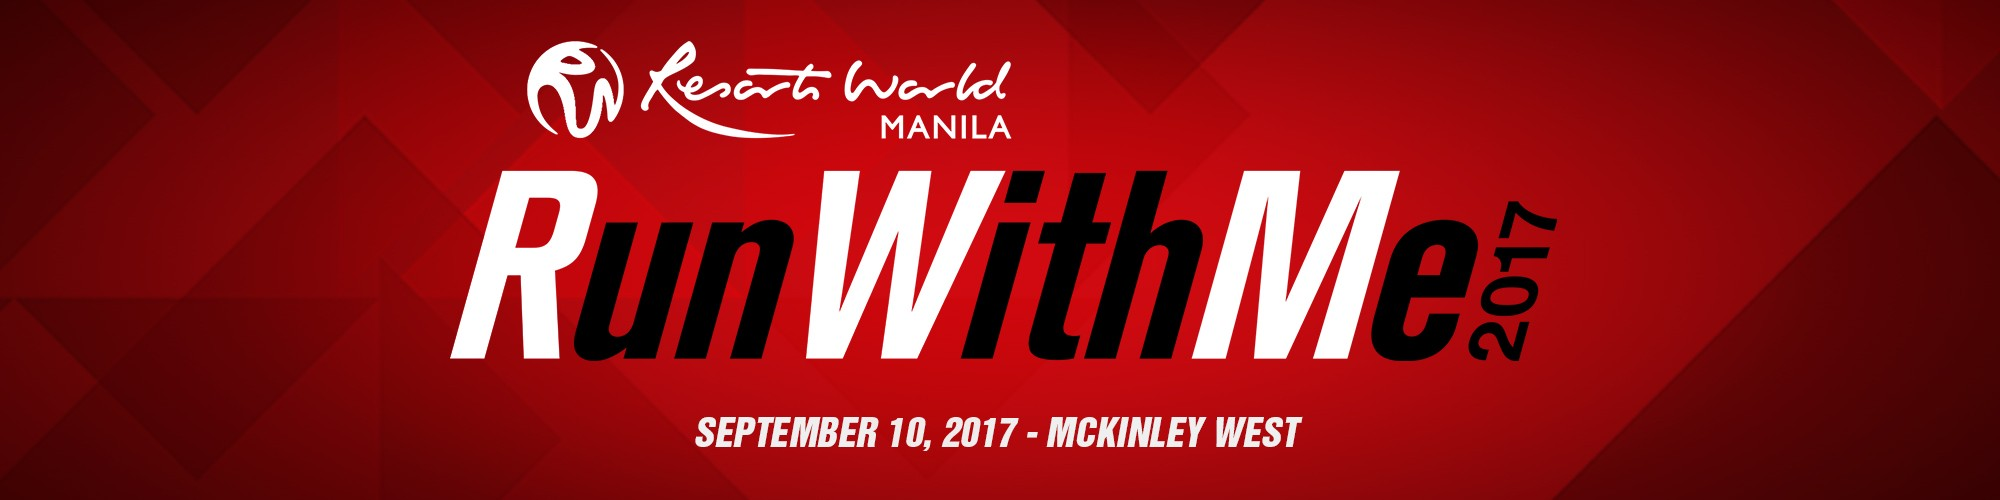 RUNRIO - Resorts World Manila 2017-09-13 05:28